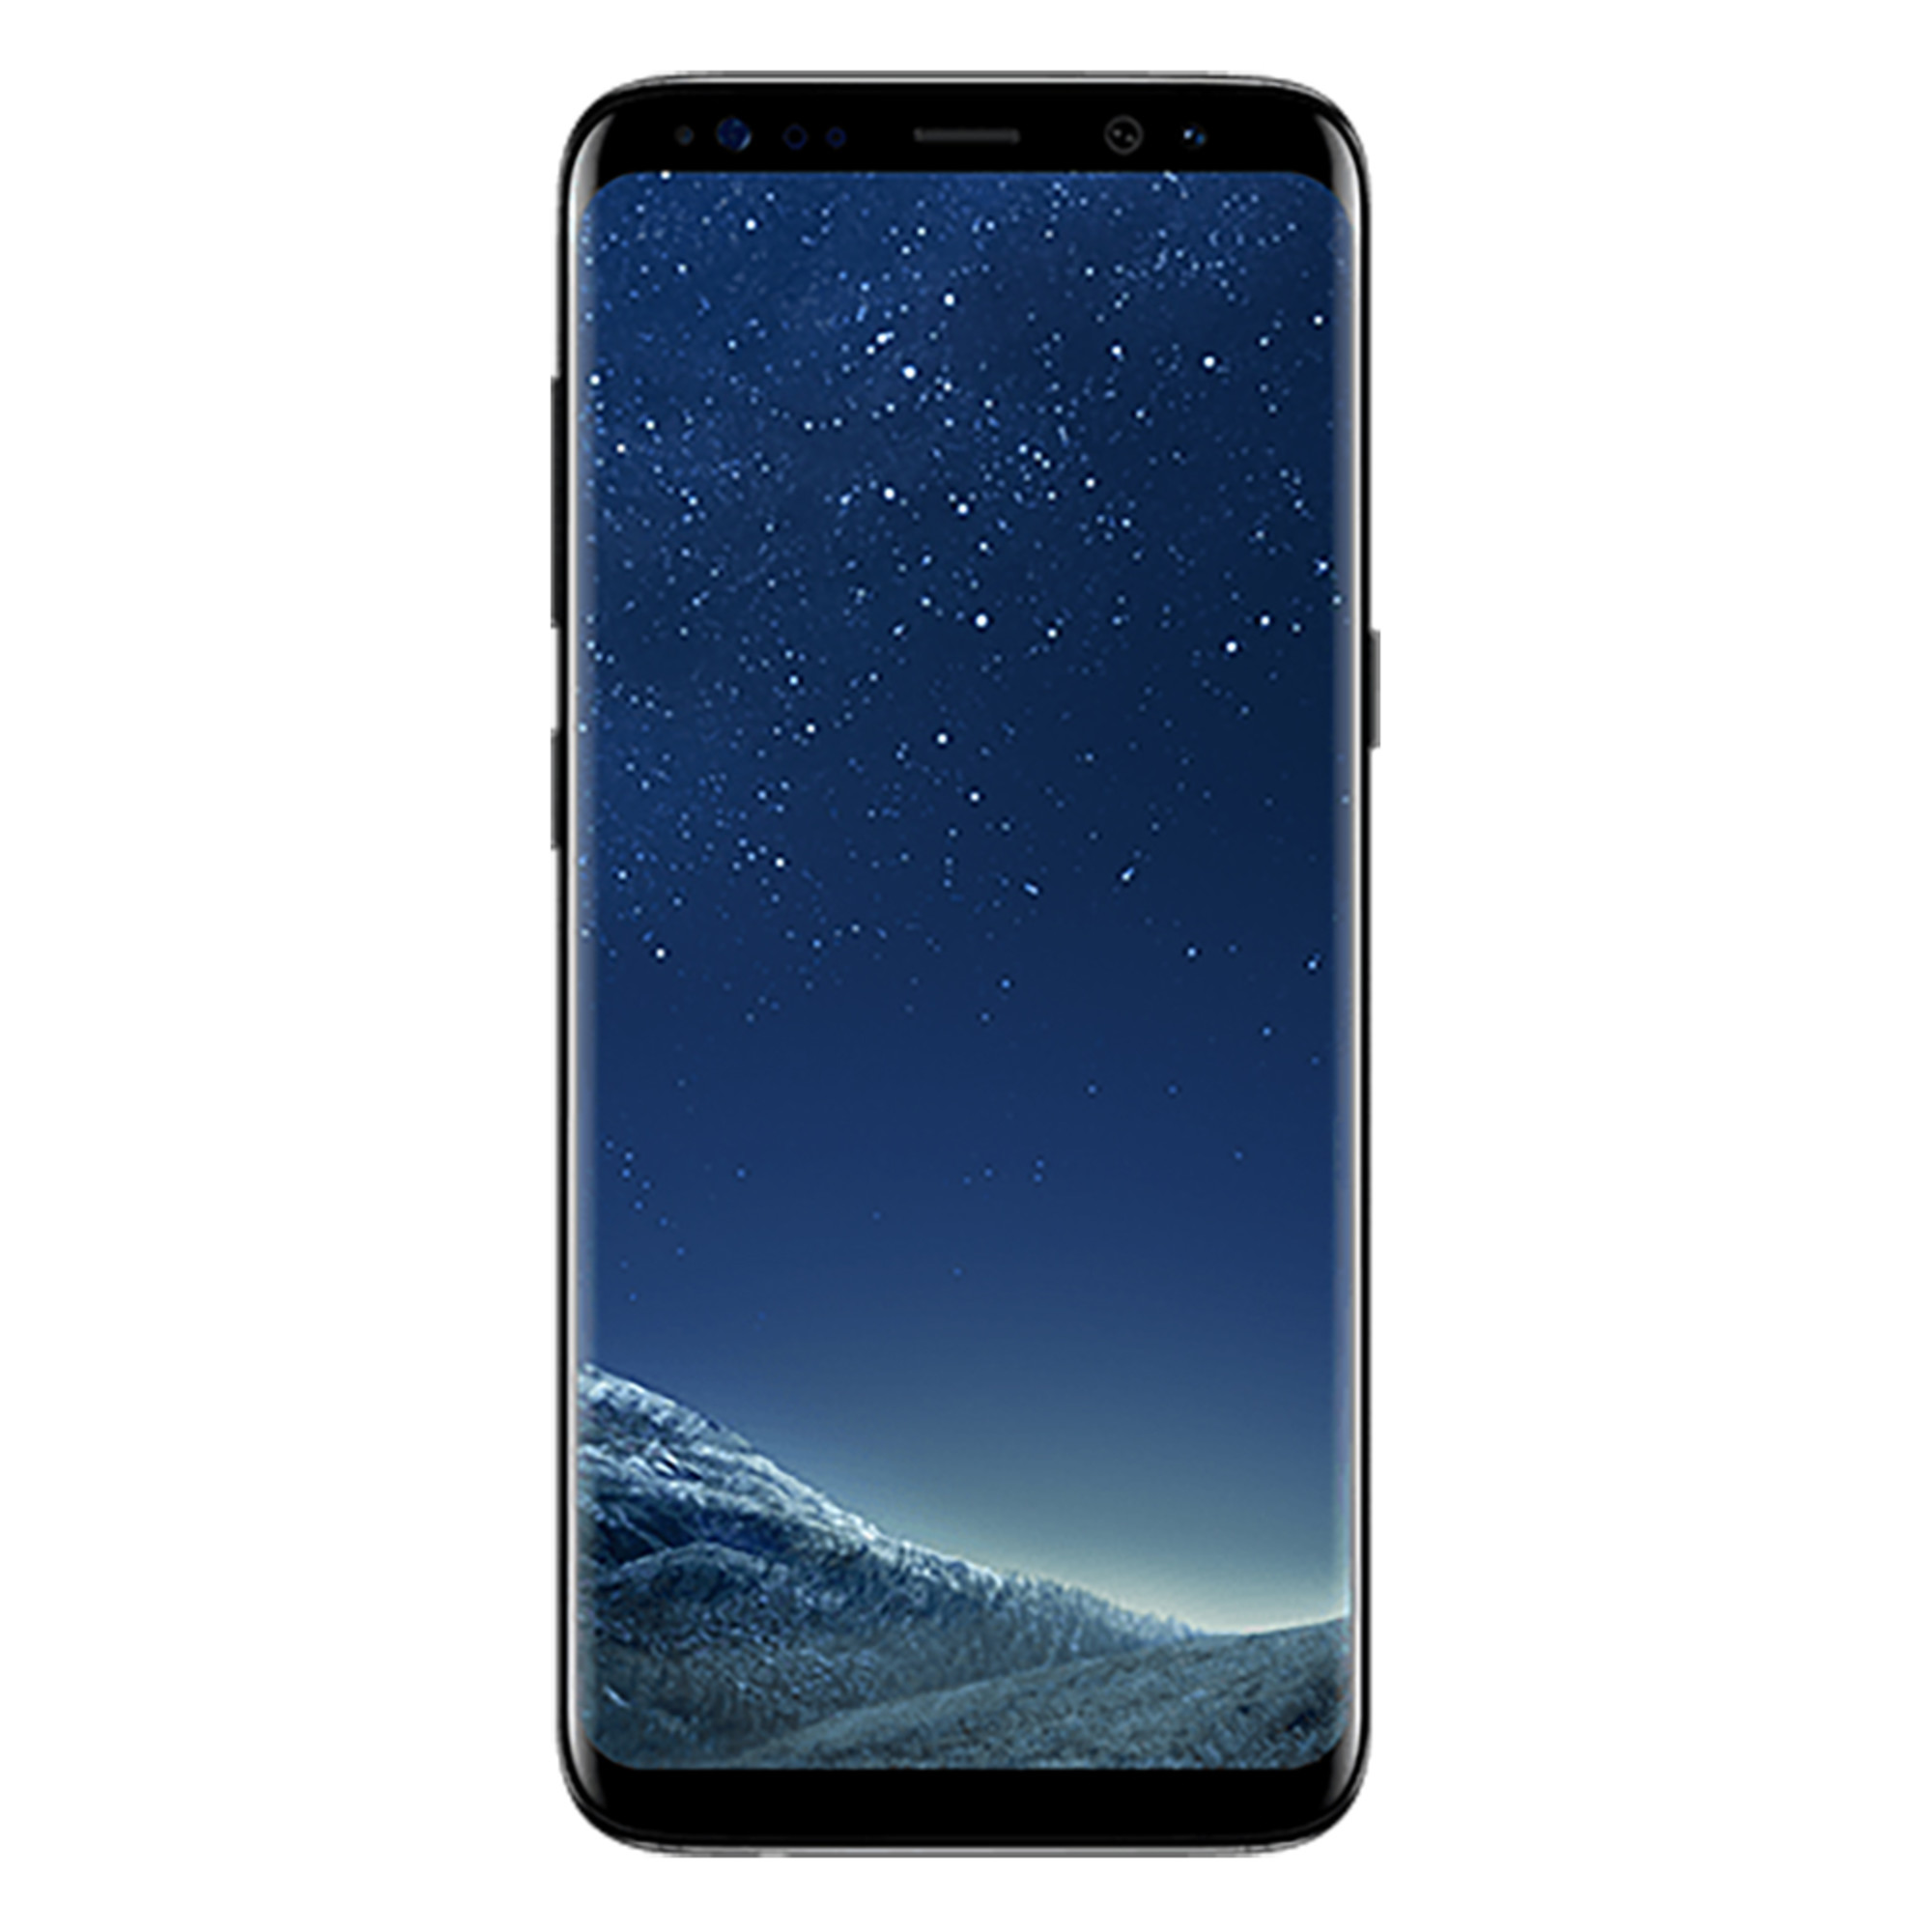 samsung galaxy s8 g950f 64gb unlocked gsm phone w 12mp. Black Bedroom Furniture Sets. Home Design Ideas